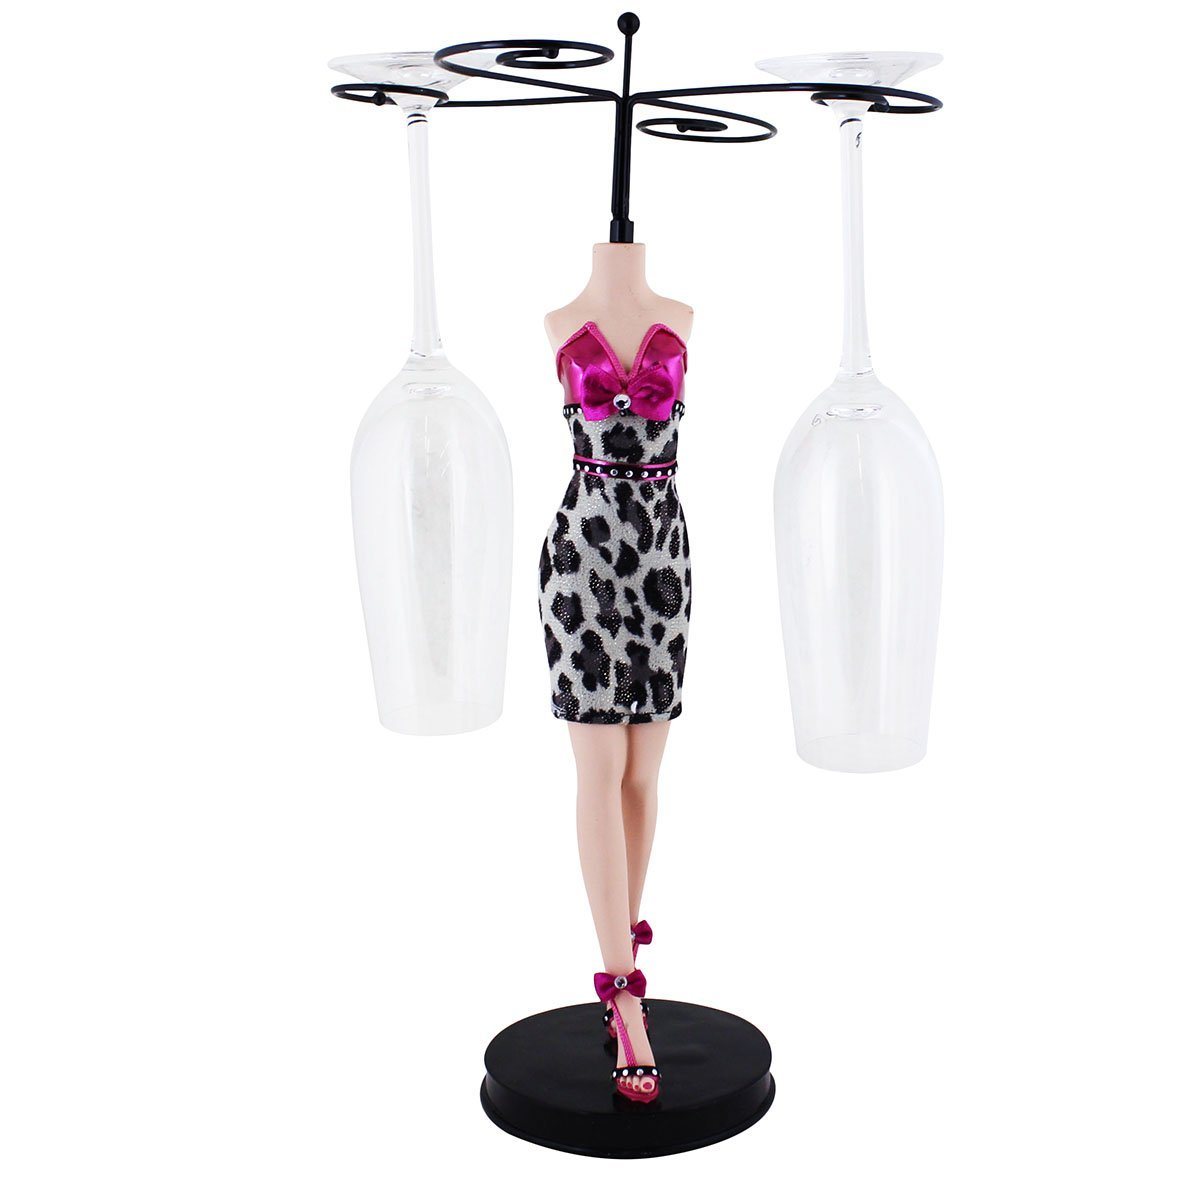 Leopard Cocktail Dress Wine Glass Holder, Fuchsia